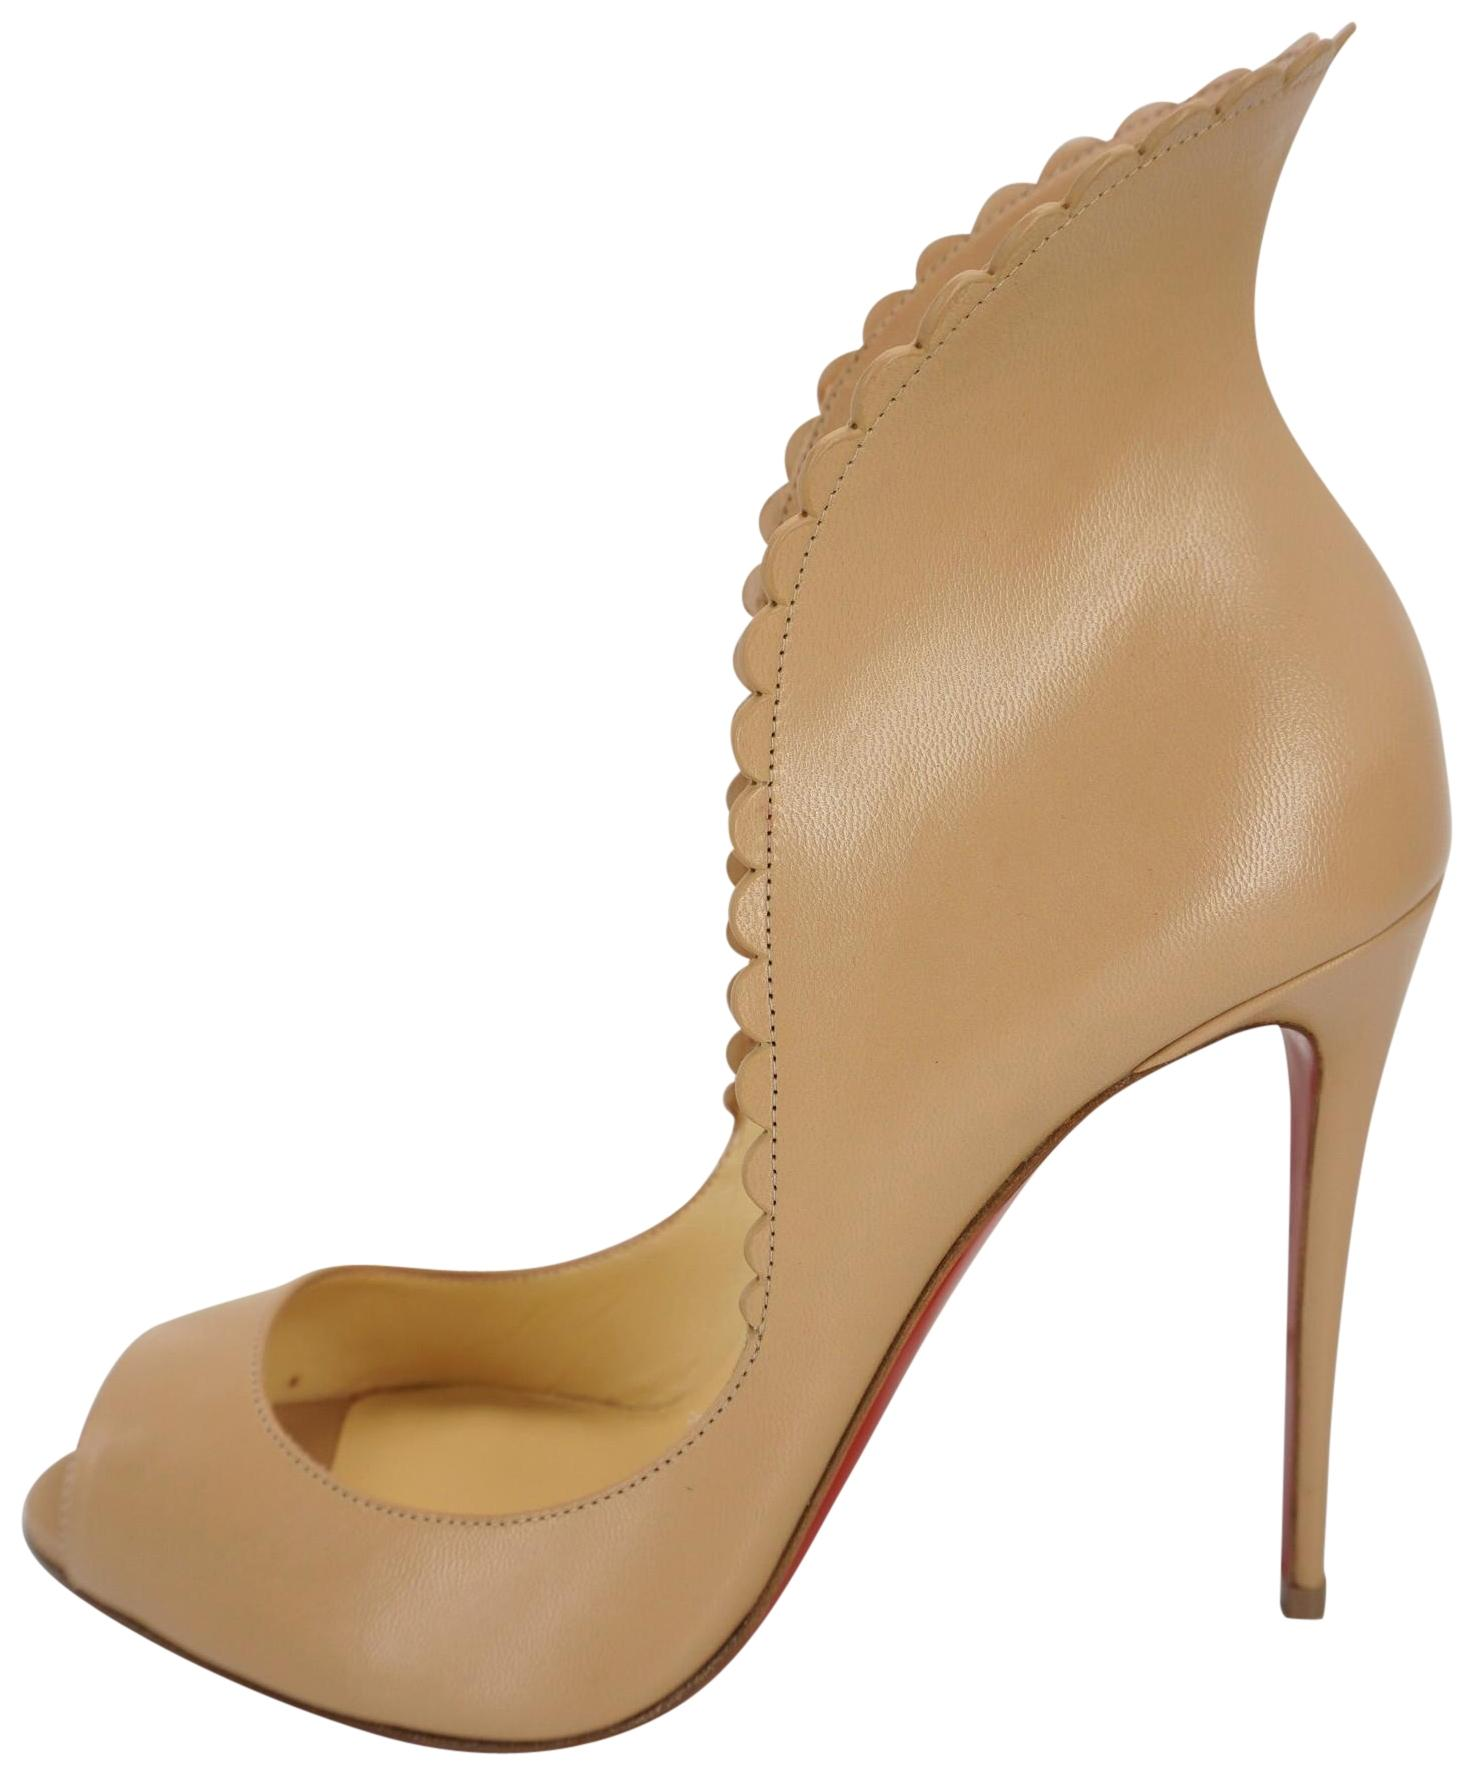 Christian Louboutin Beige Nude Pijonina Scalloped Nude Leather Winged Pumps Size EU 39 (Approx. US 9) Regular (M, B)